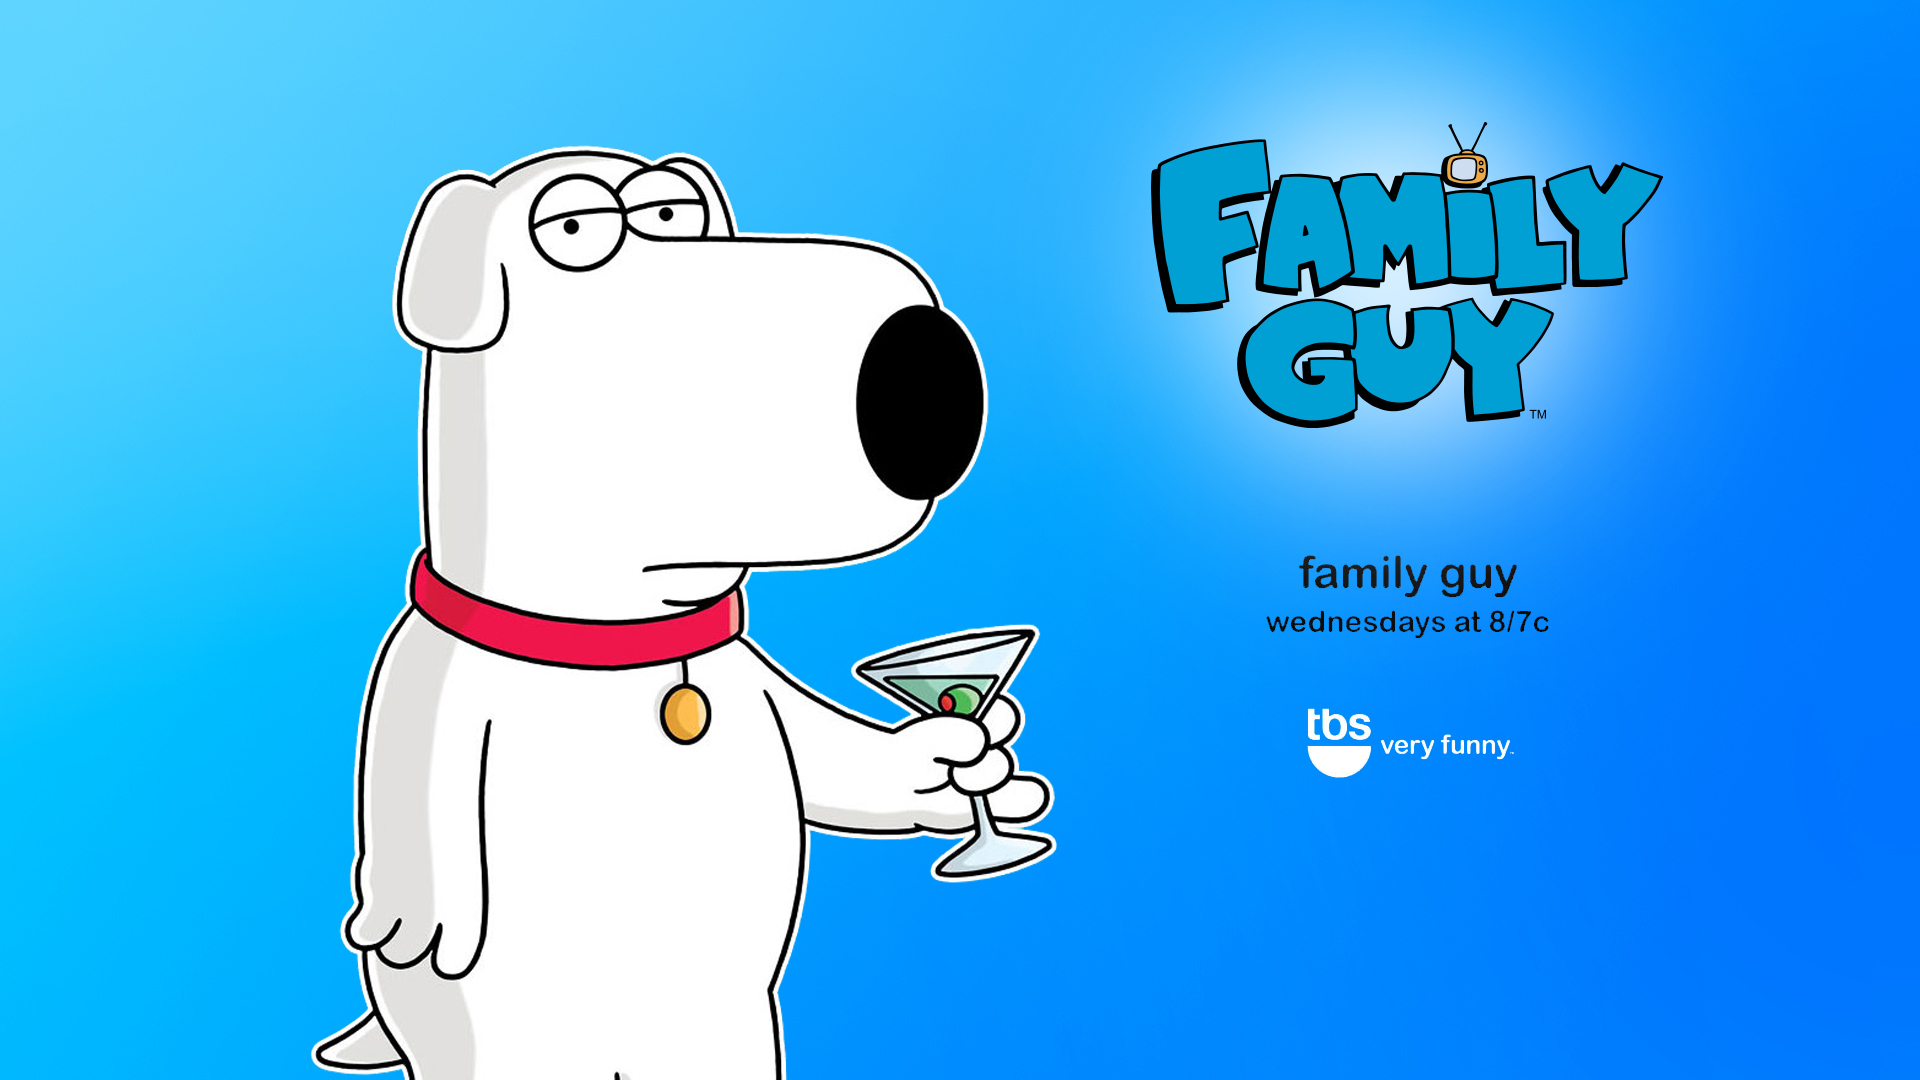 Family Guy Images 1920x1080 Desktop Walpaper Collection HD Wallpaper And Background Photos